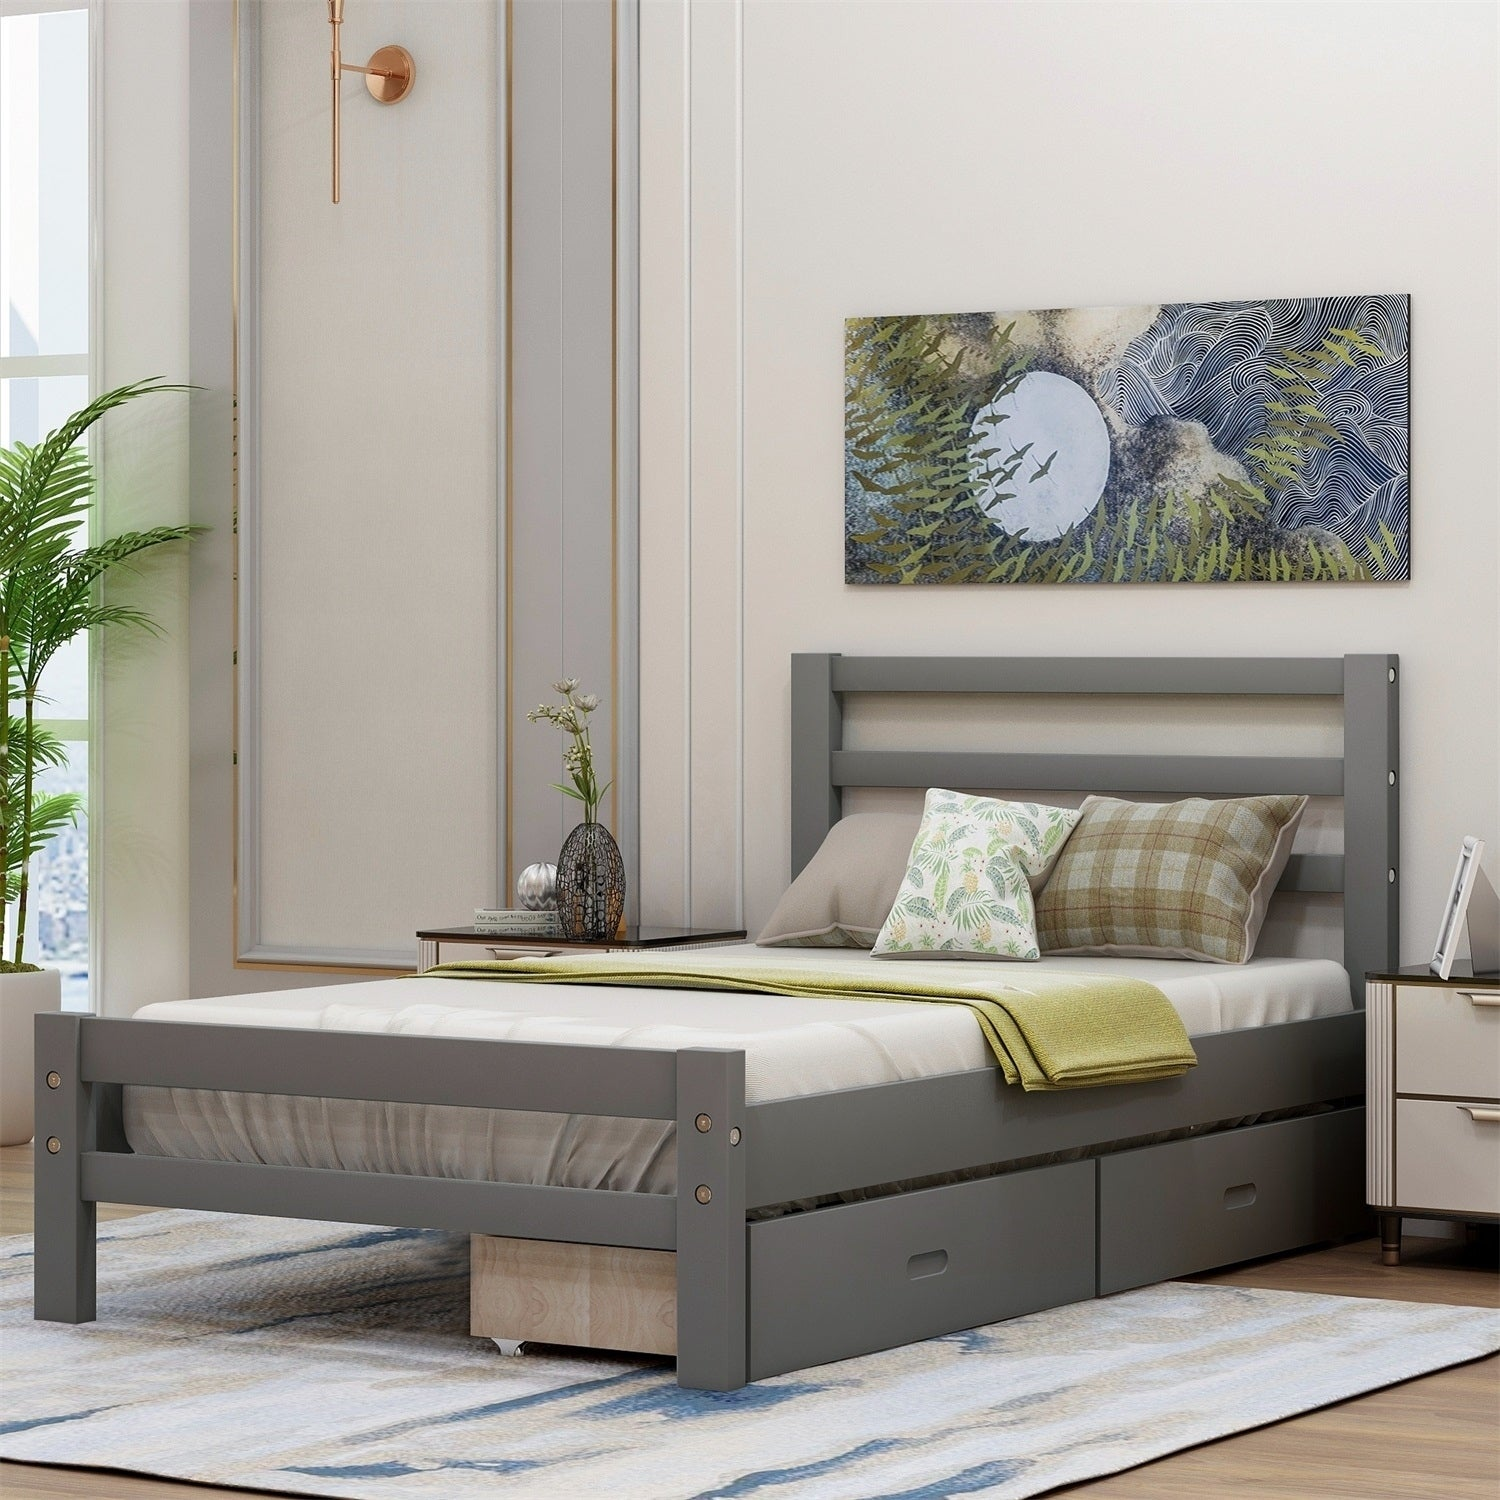 Shop Merax Wood Twin Bed Frame With Storage Drawers And Headboard